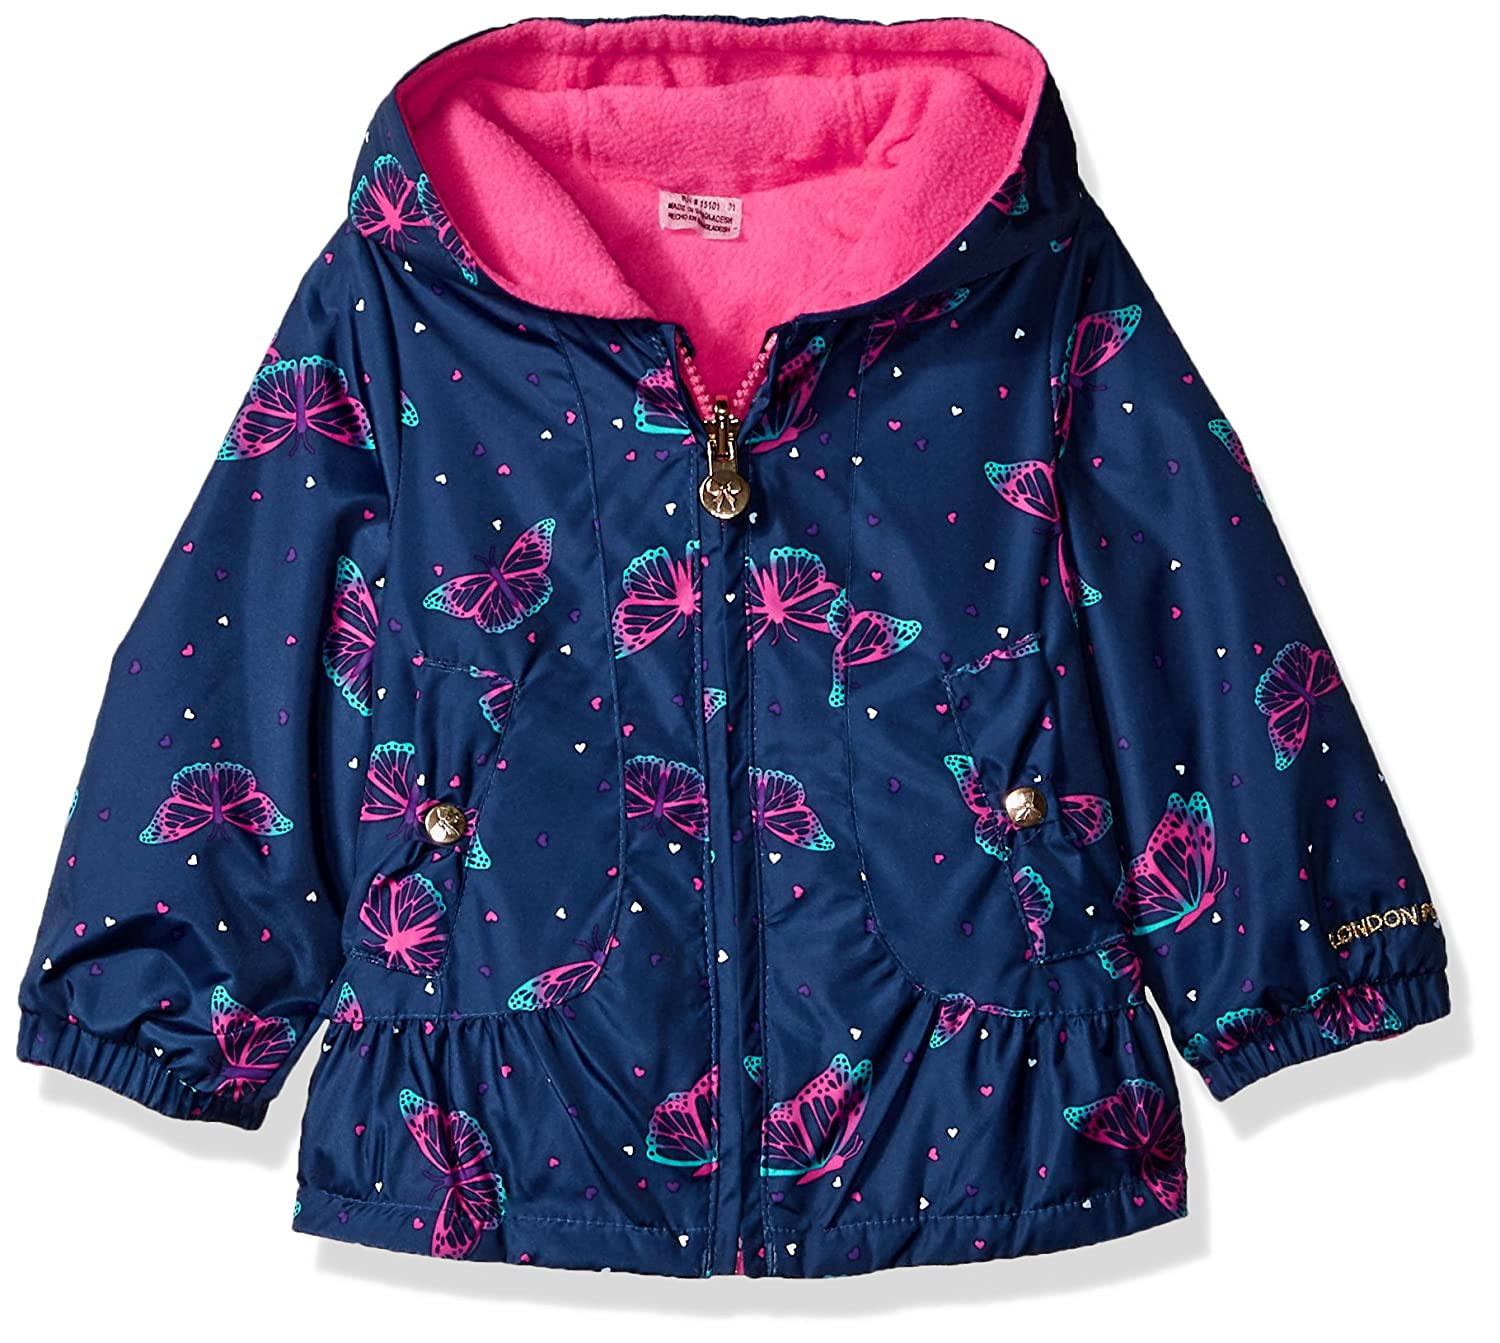 London Fog Baby Girls Reversible Sensible & Soft Jacket Coat